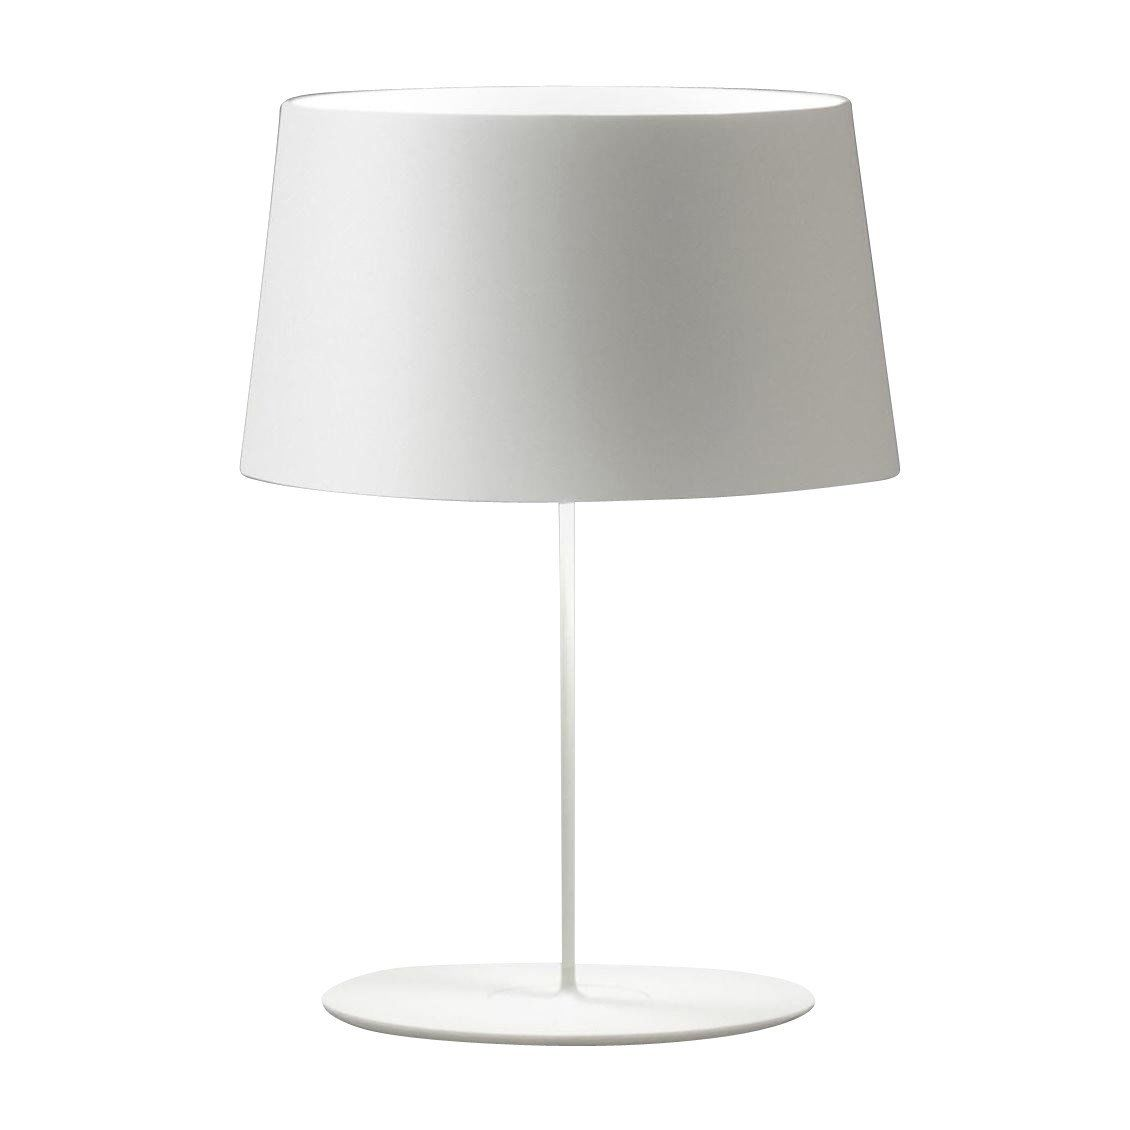 table lamps lamp mini index set detail of mother round pearl sp products accessories